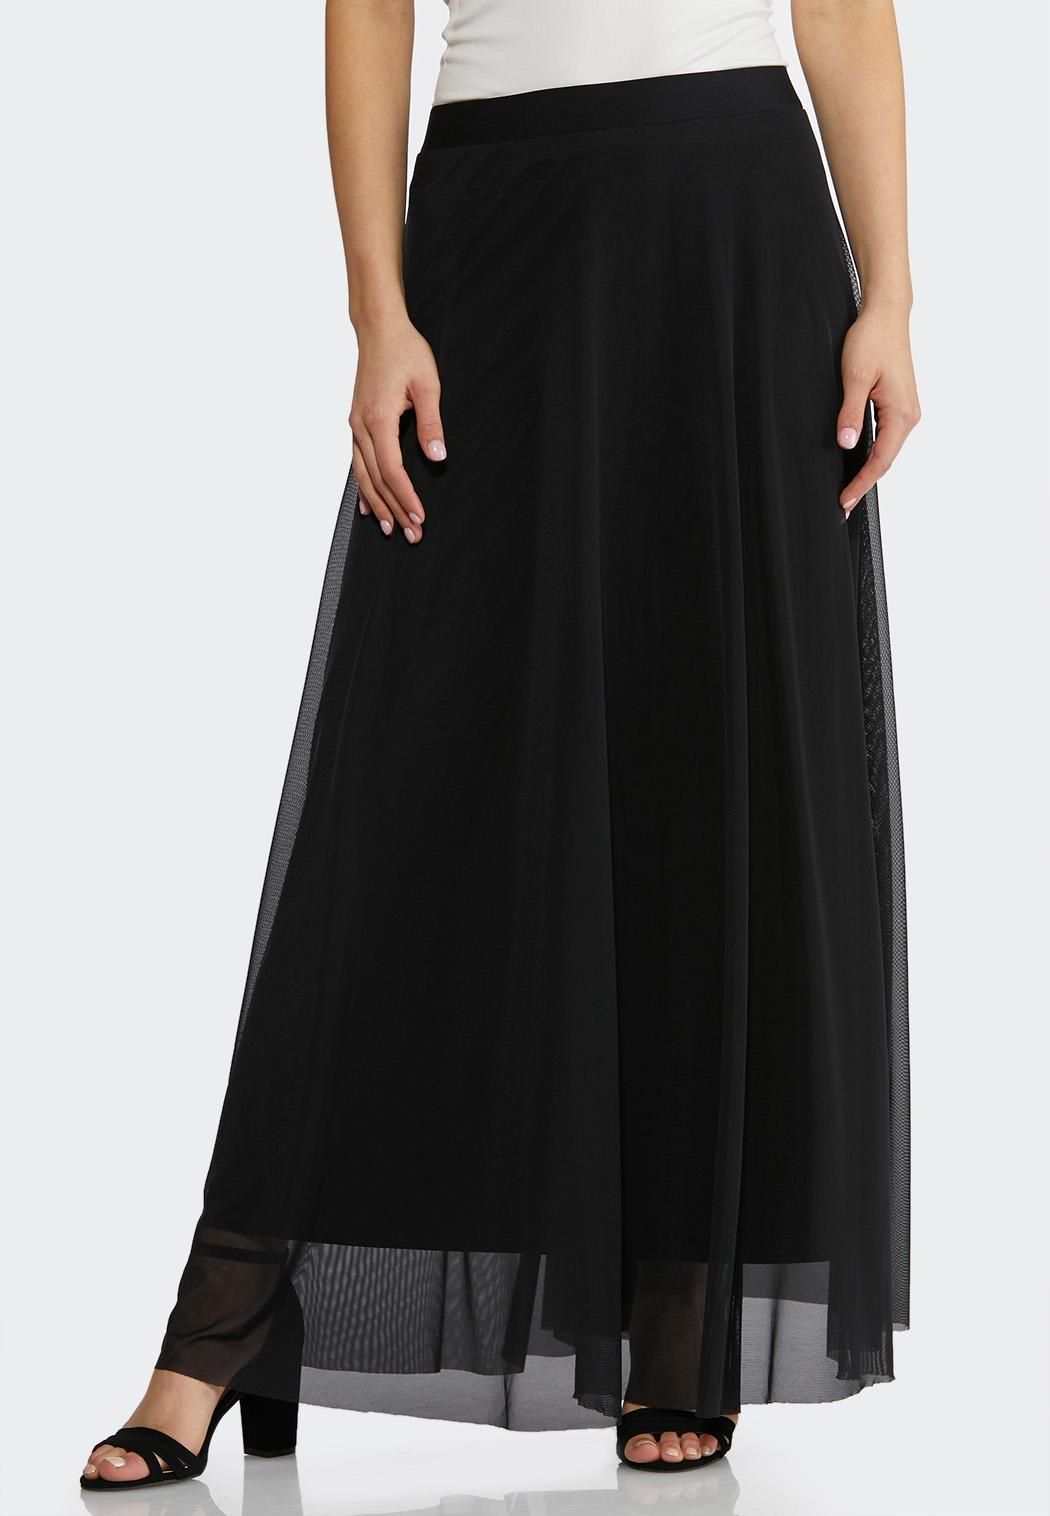 d18840956b3 Plus Size Solid Mesh Maxi Skirt Skirts Cato Fashions in 2019 ...